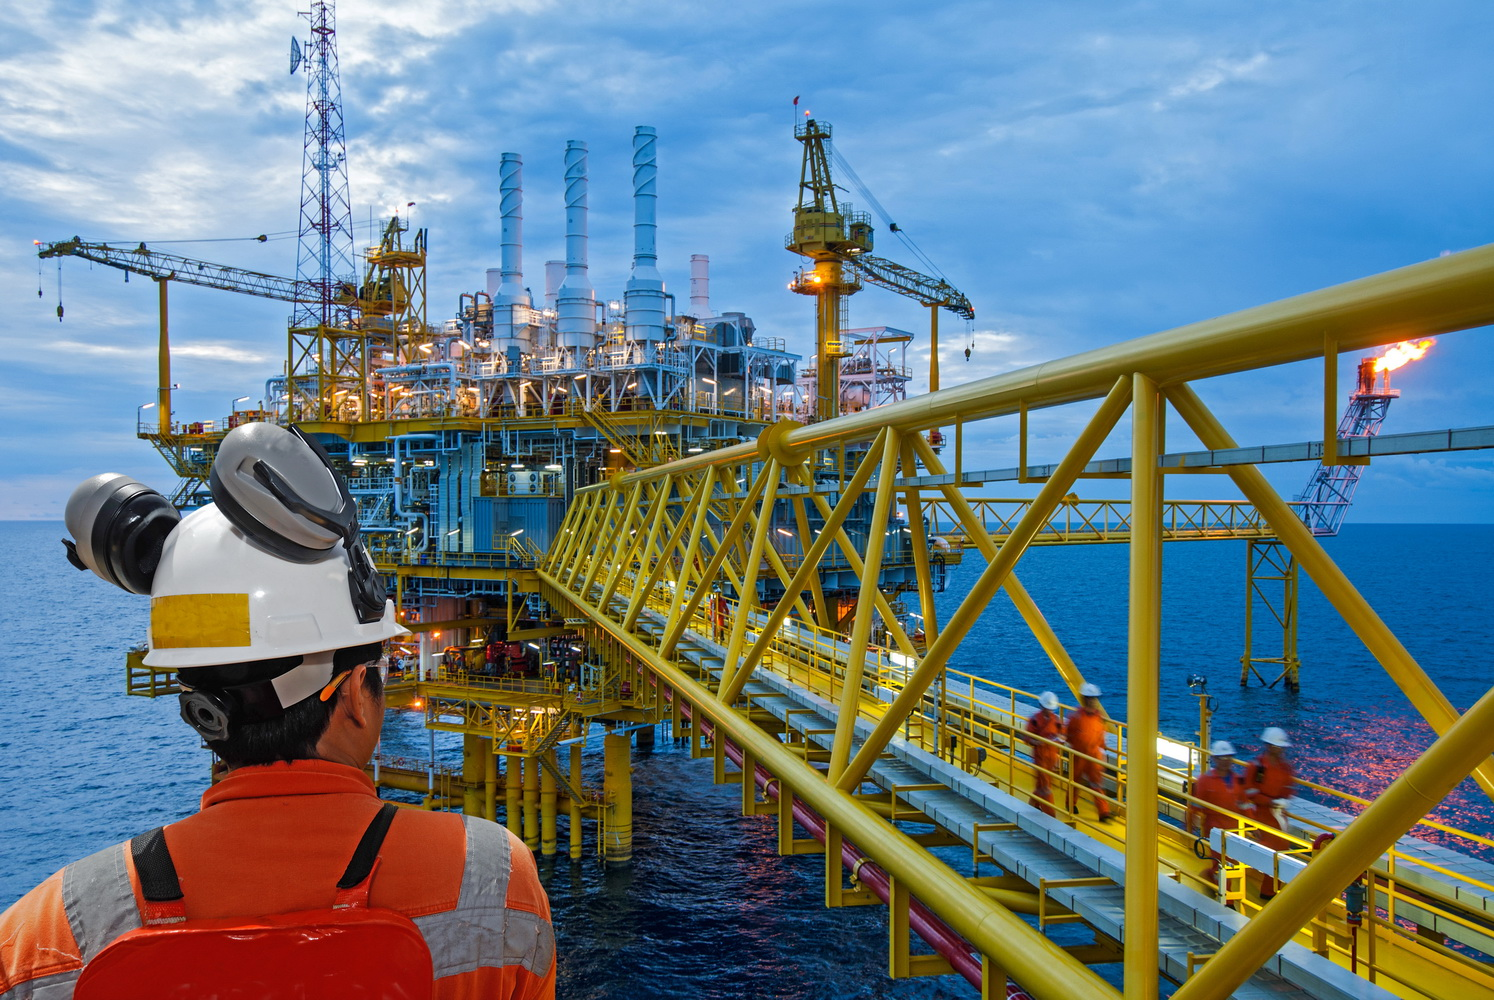 Offshore Petroleum Oil and Gaz Eurotech Training Consultancy Recruitment Fadi Jawad Course